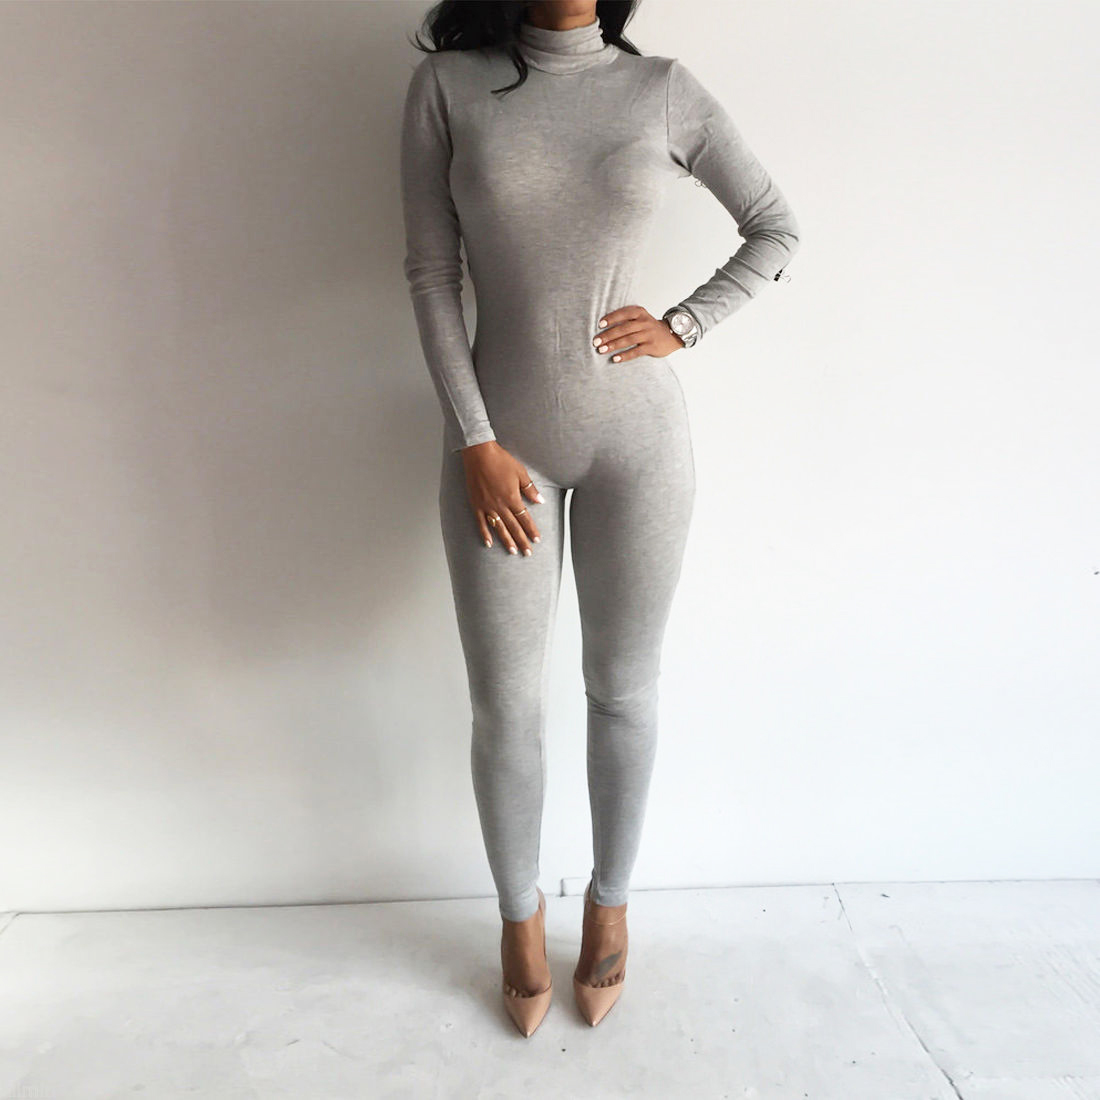 2019 Women Jumpsuit Turtleneck Long Sleeve Bodycon Cotton Grey/Black Rompers New Casual Solid Autumn Winter